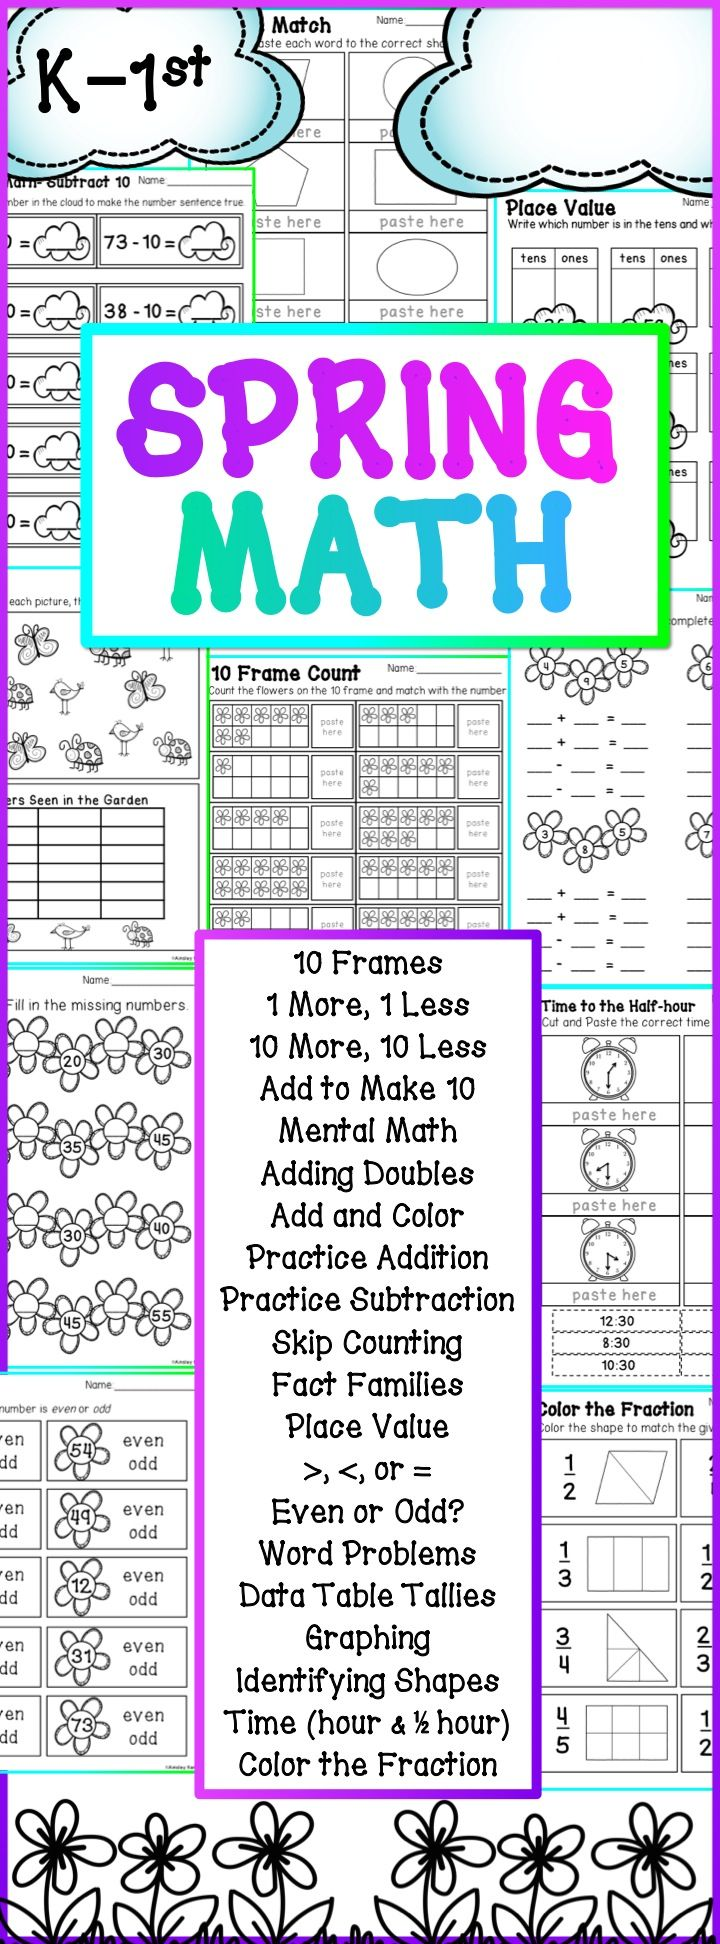 906 best TPT images on Pinterest | Learning resources, Teaching ...